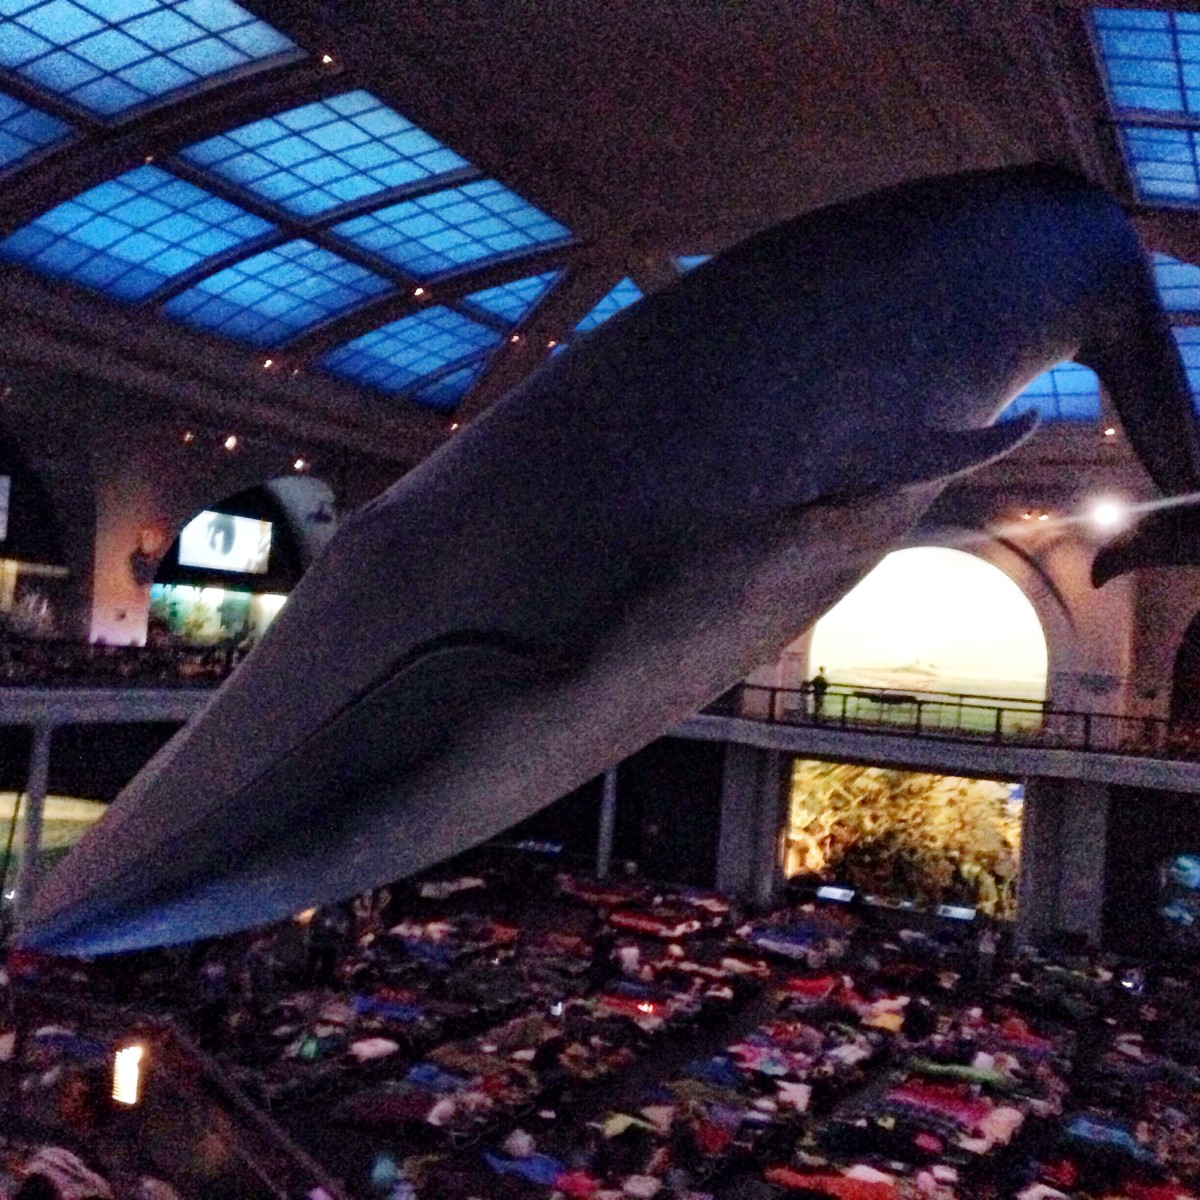 Big Blue Whale at American Museum of Natural History